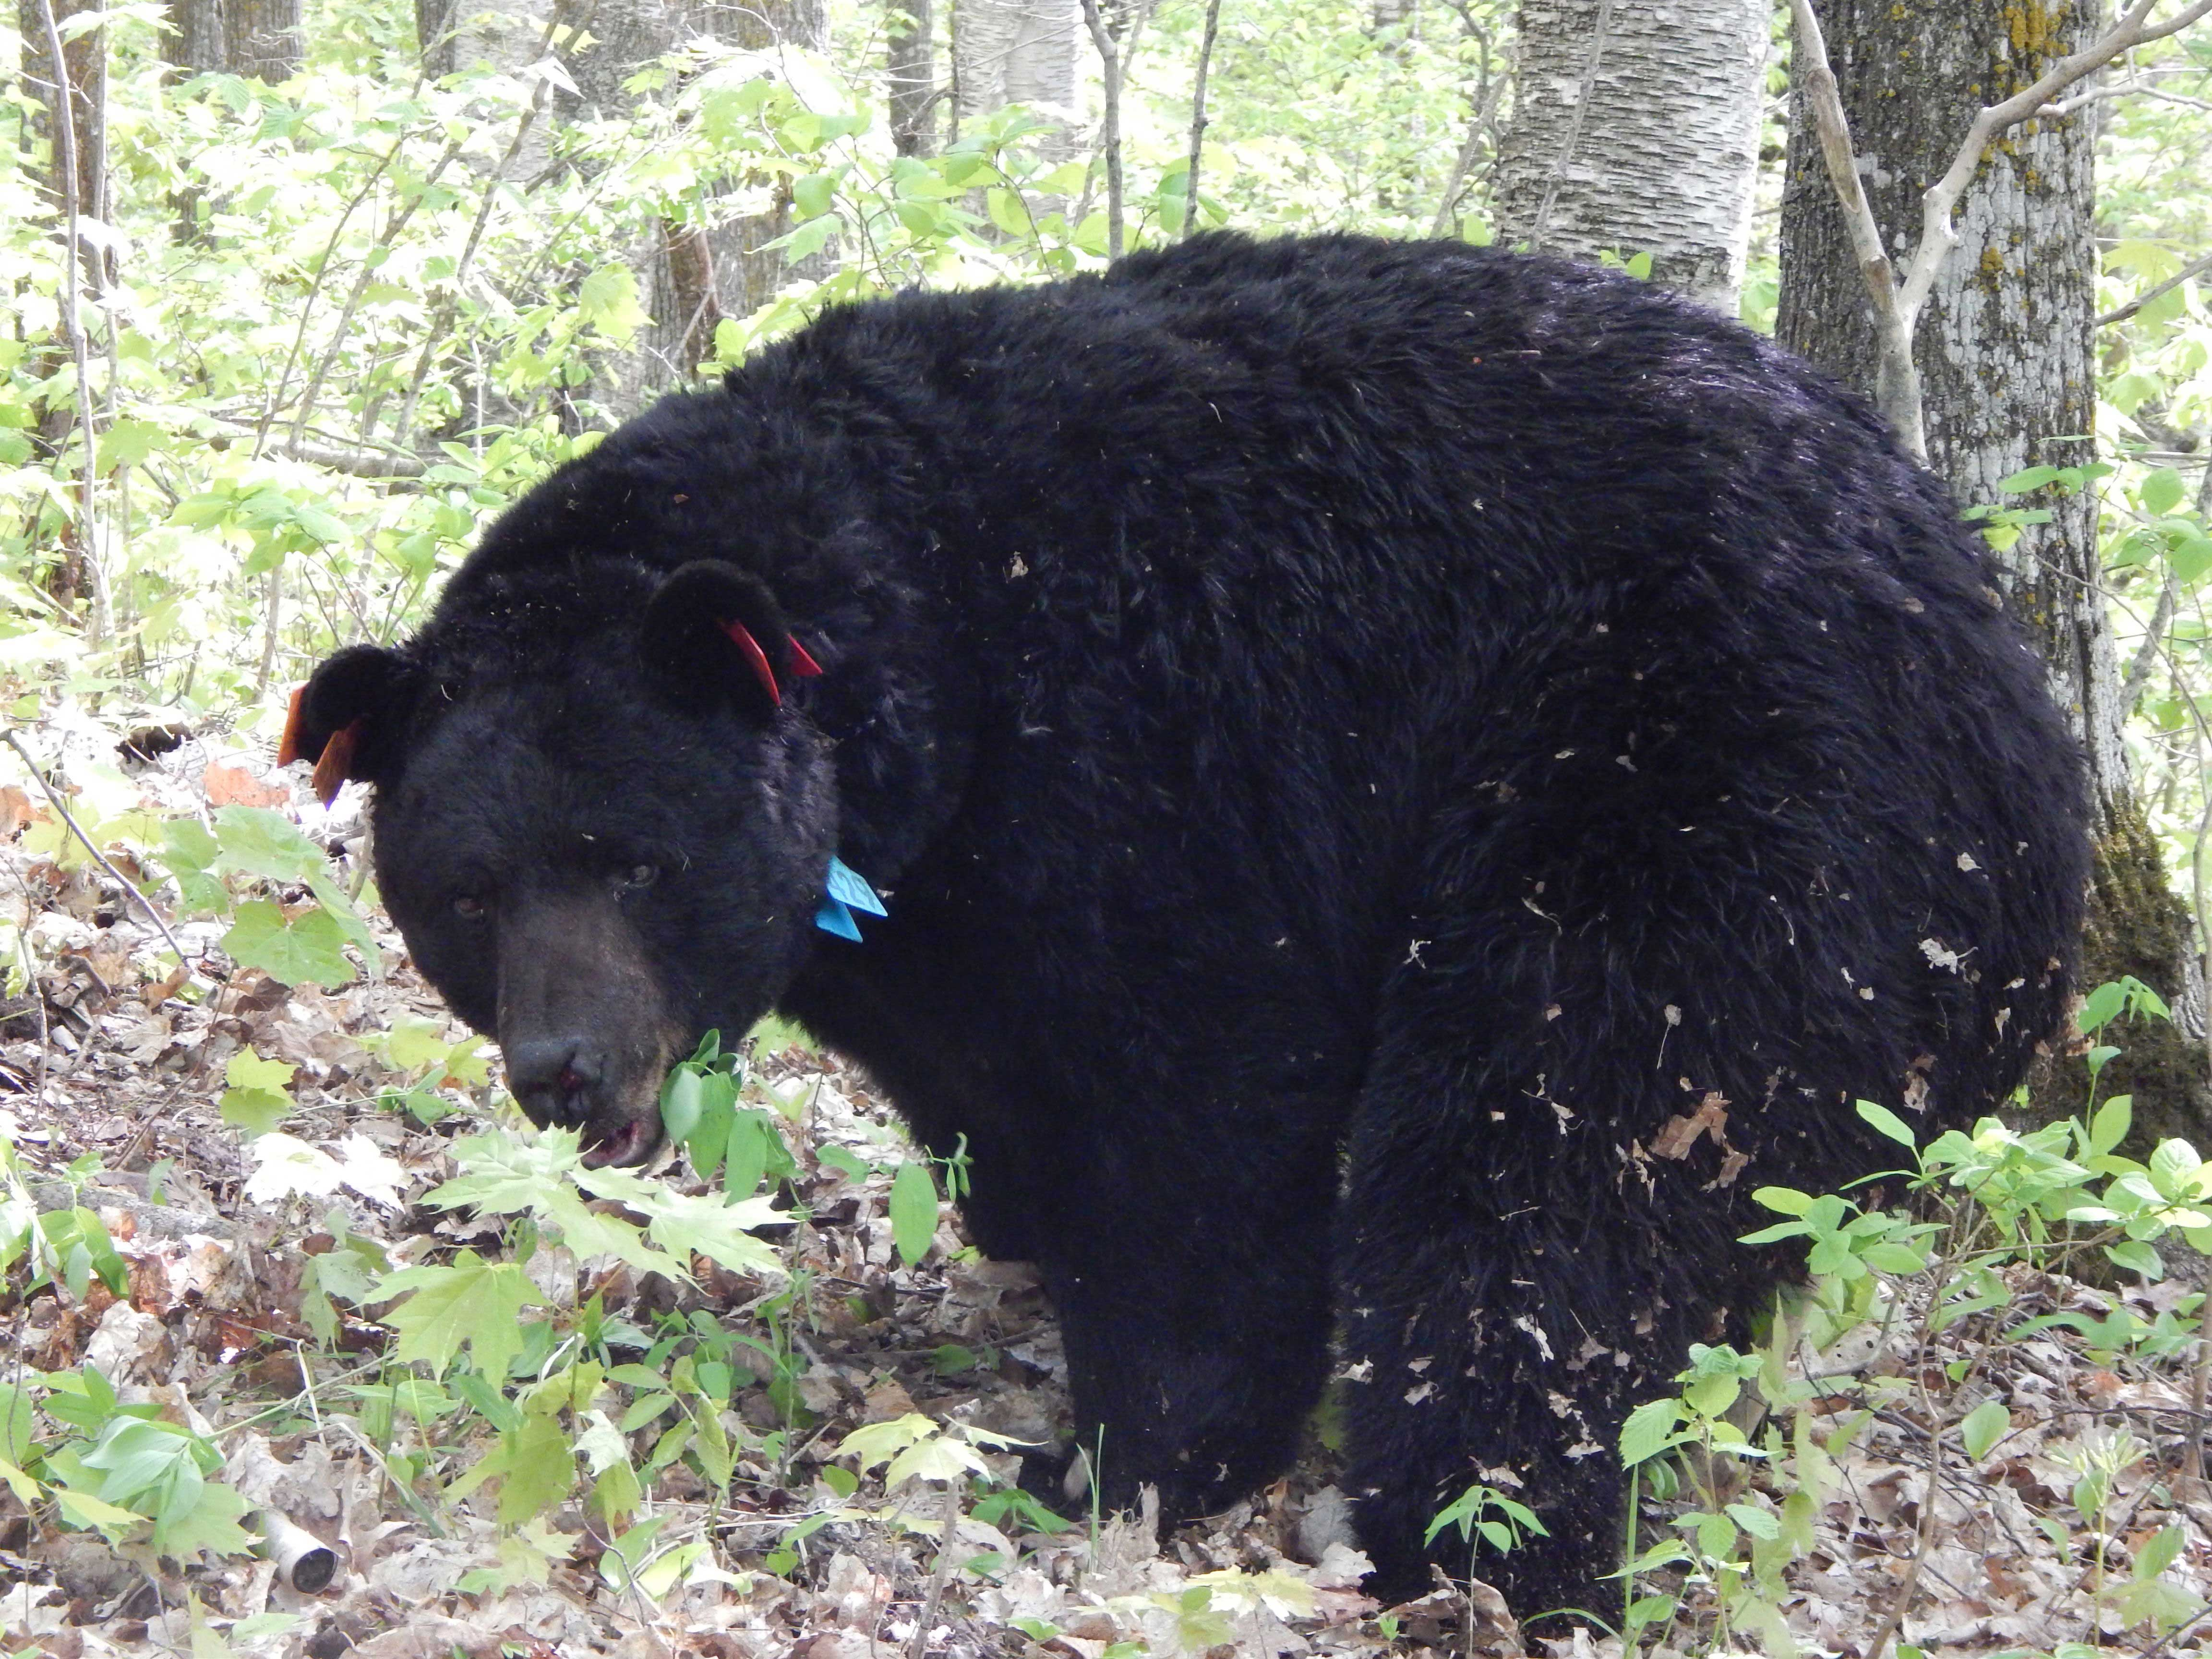 A research bear with tags in its ears and a collar